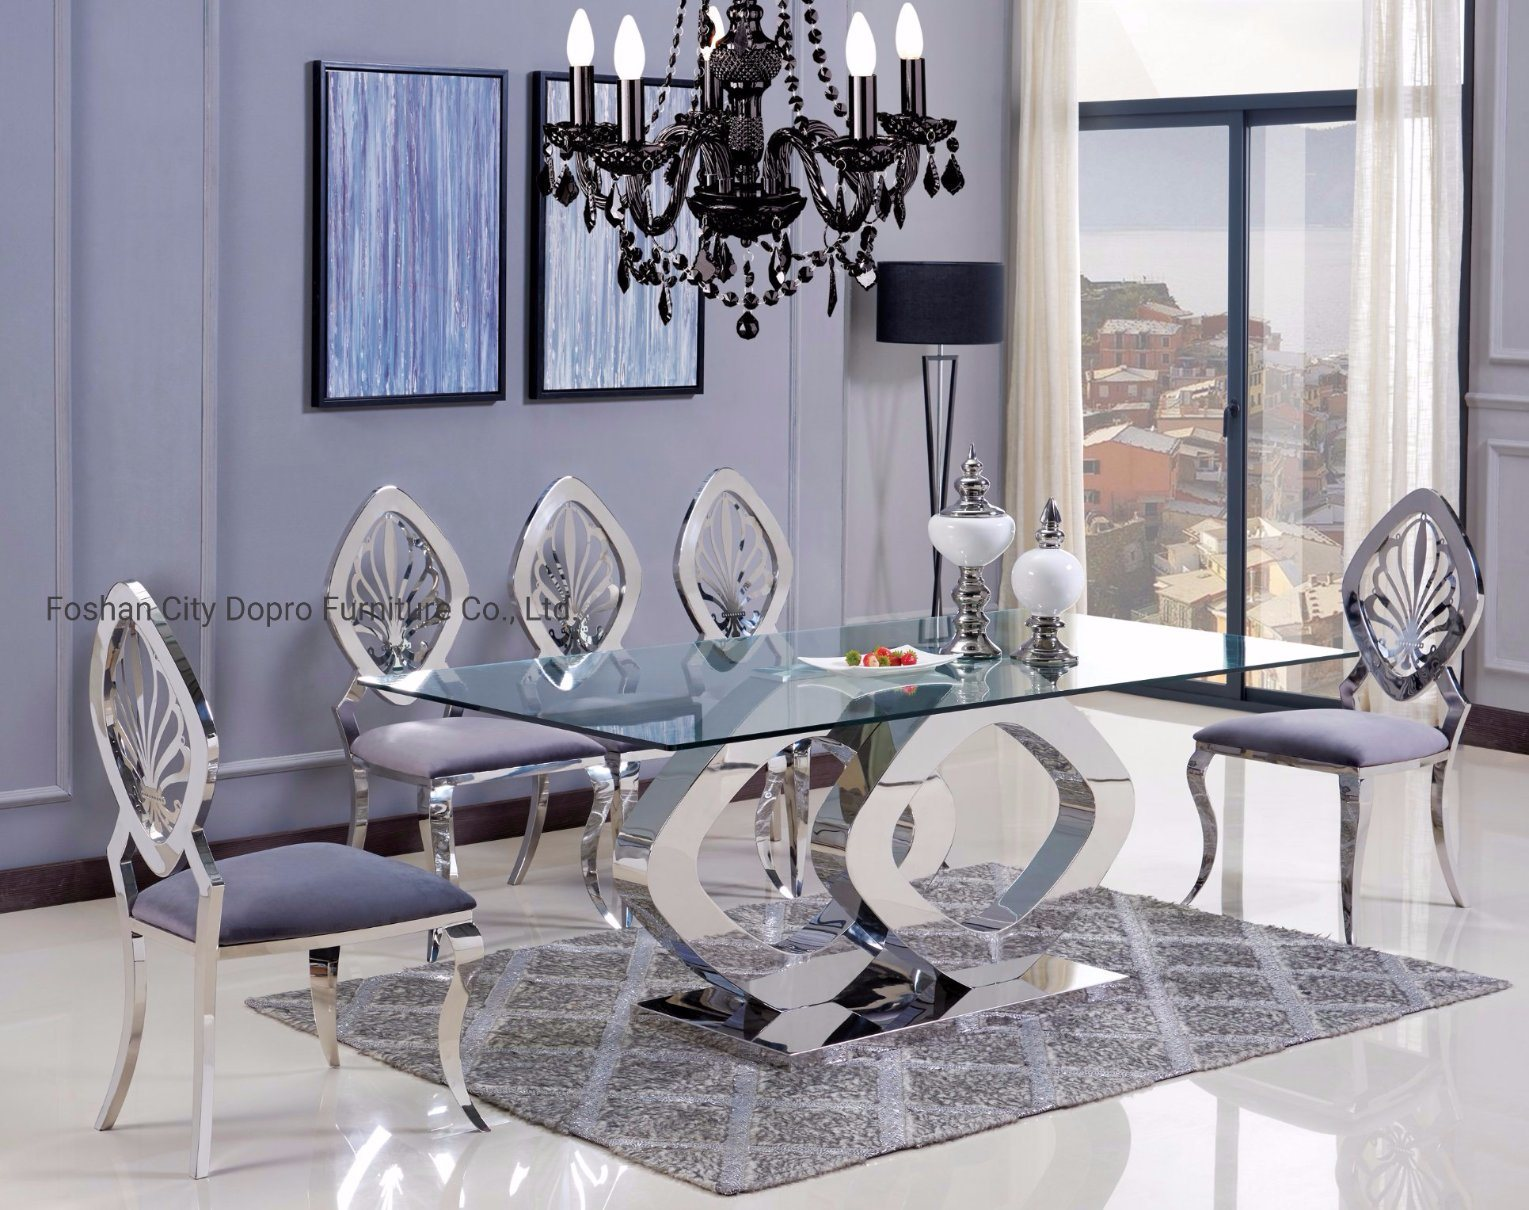 China Modern Clear Glass Dining Table, Where To Find Dining Room Furniture